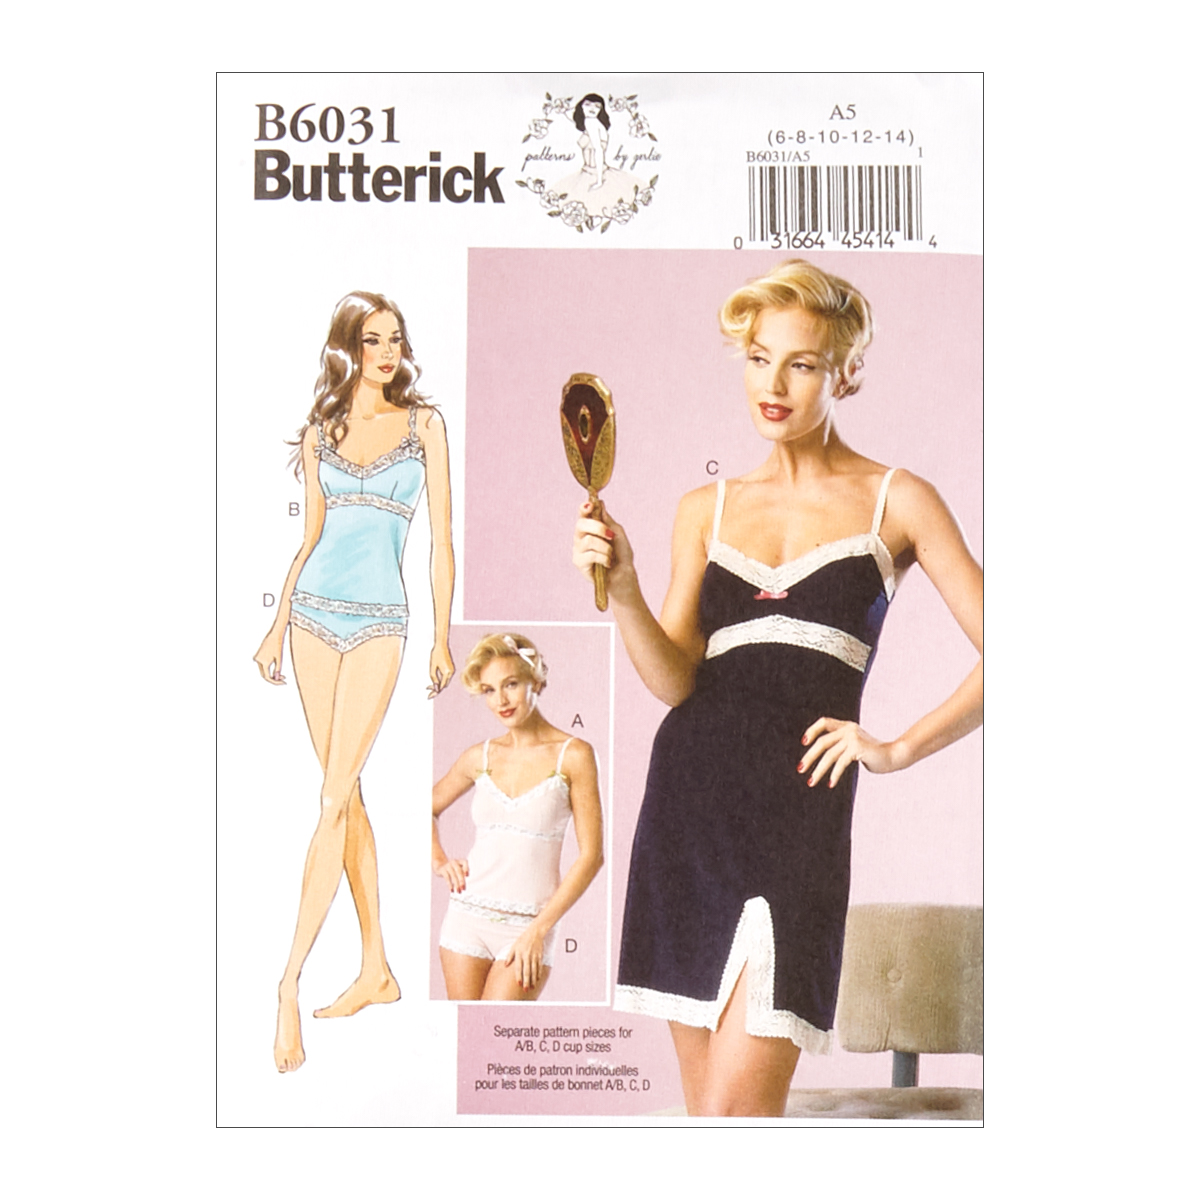 1960s – 70s Sewing Patterns- Dresses, Tops, Pants Butterick B6031 Patterns by Gertie Camisole Slip and Panties A5 Sizes 6-14 $11.97 AT vintagedancer.com